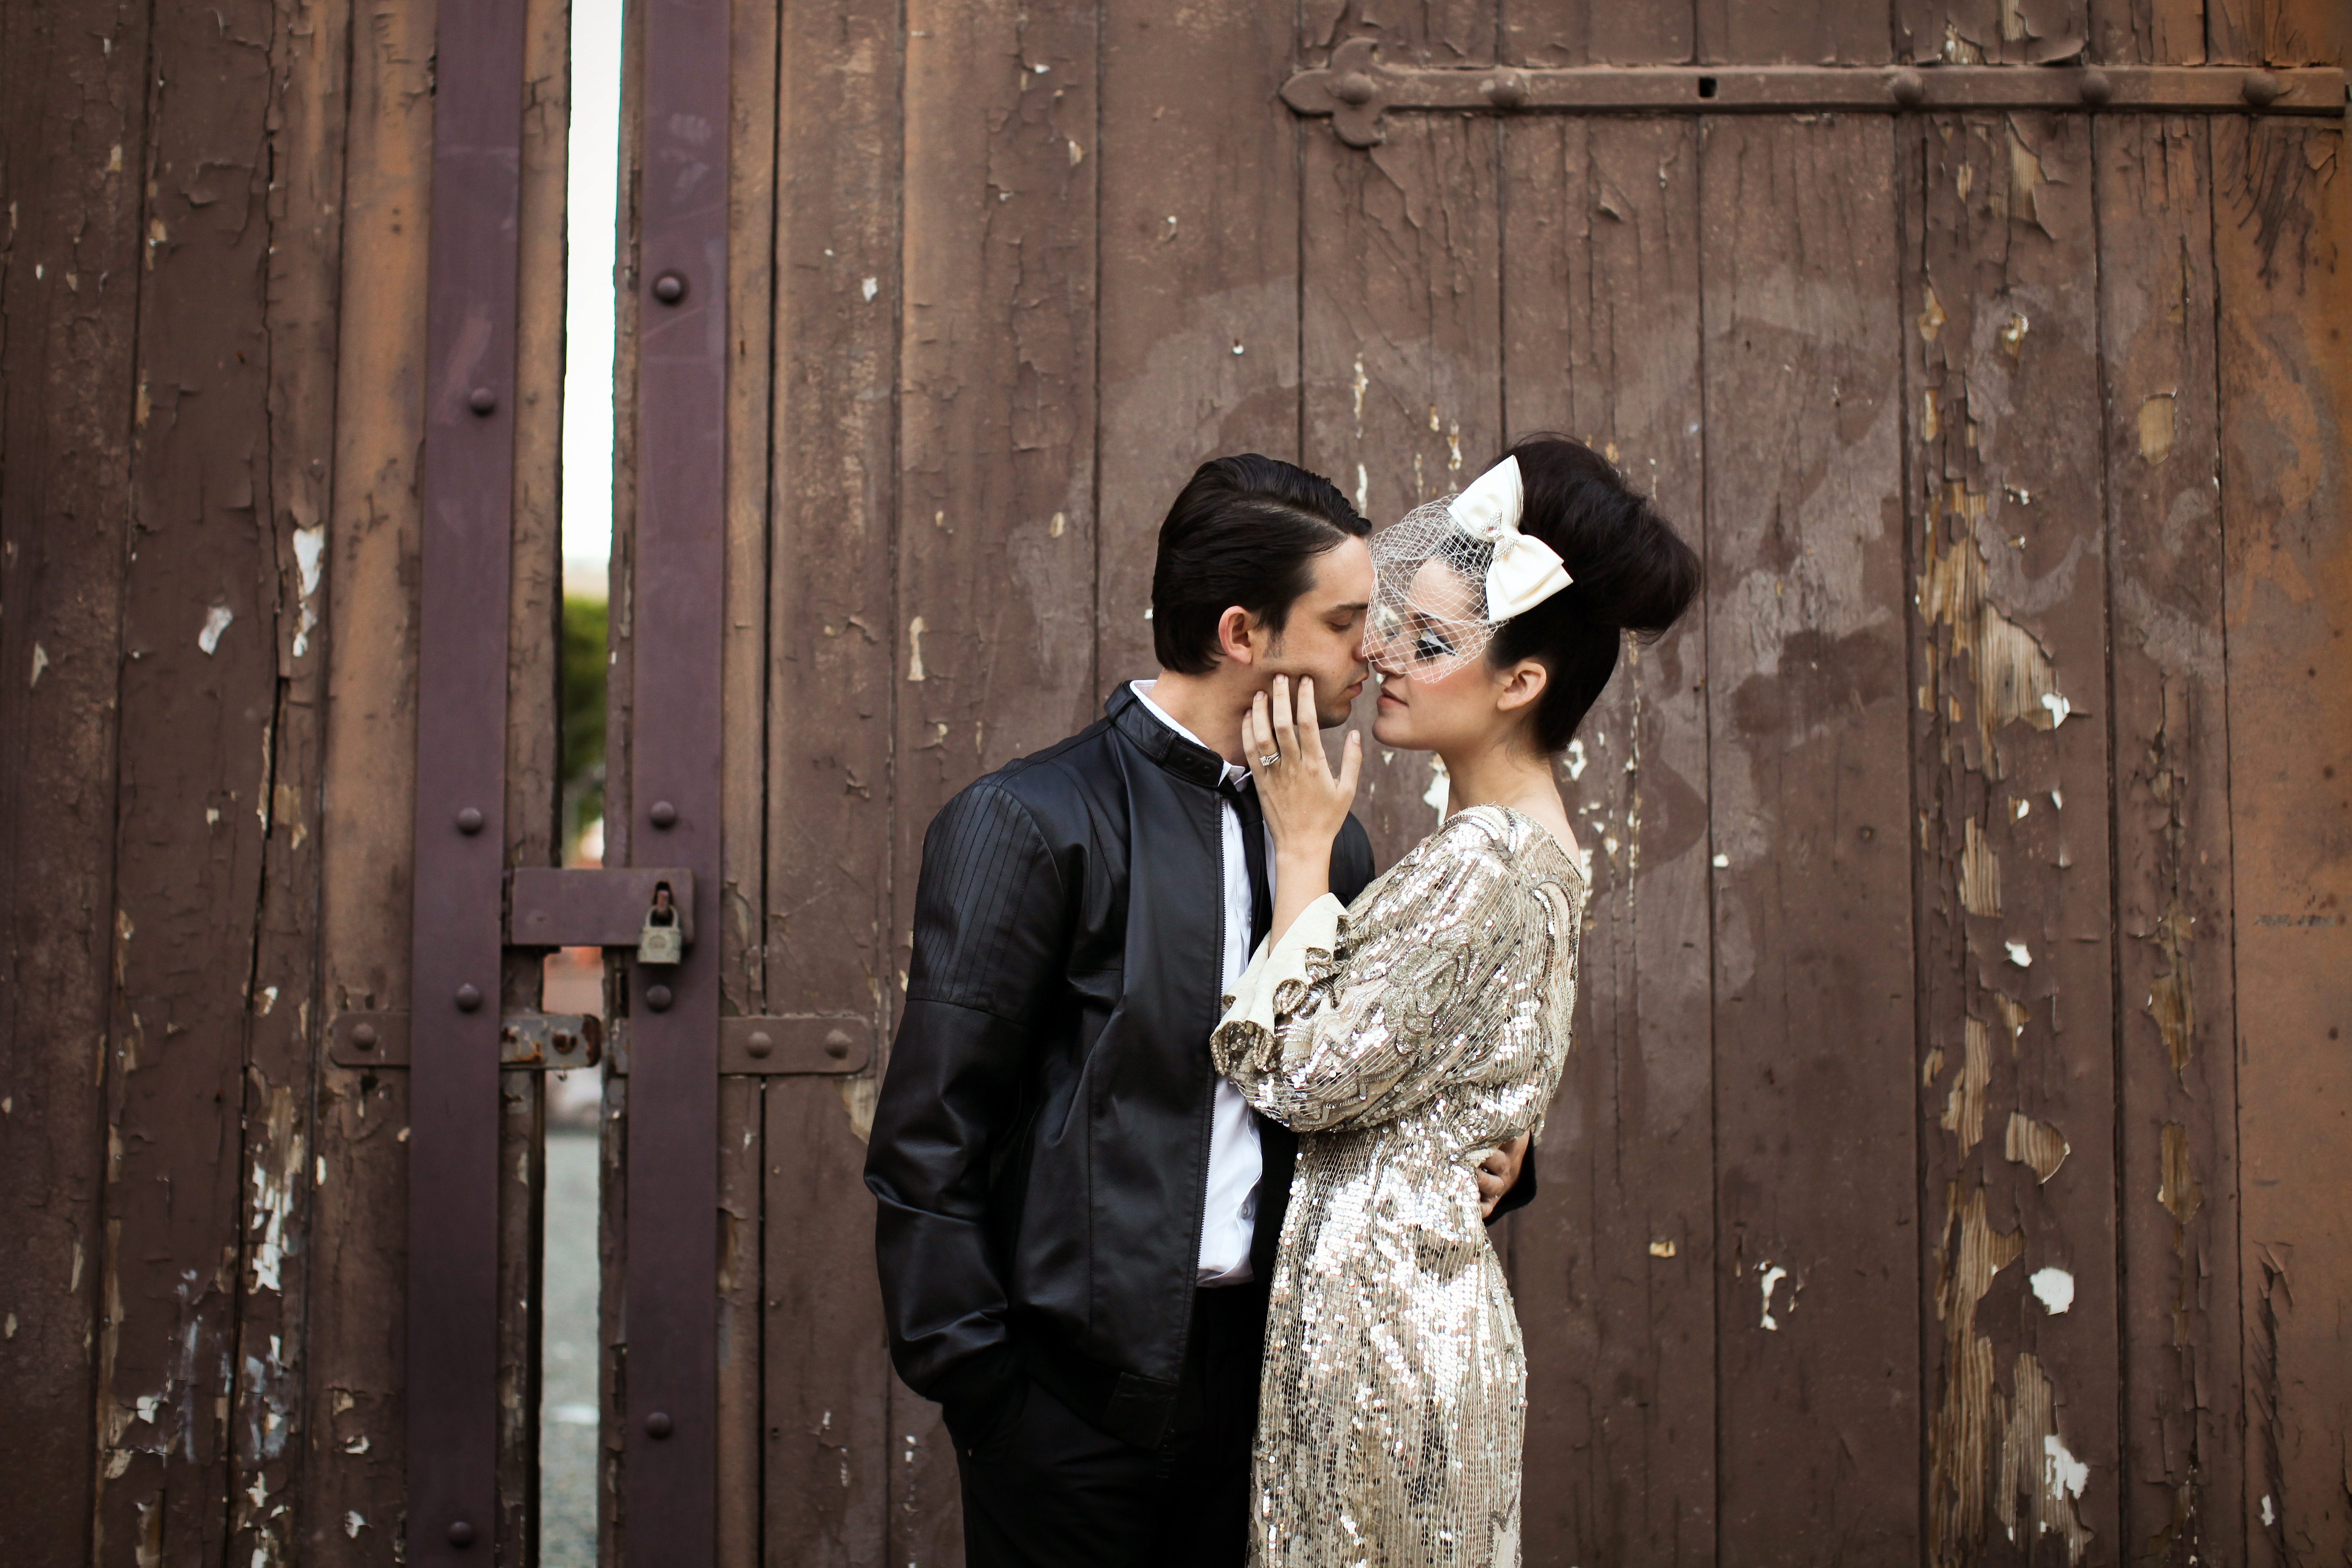 Wedding Photographer Jasmine Star Explains How To Work With A 2nd Shooter